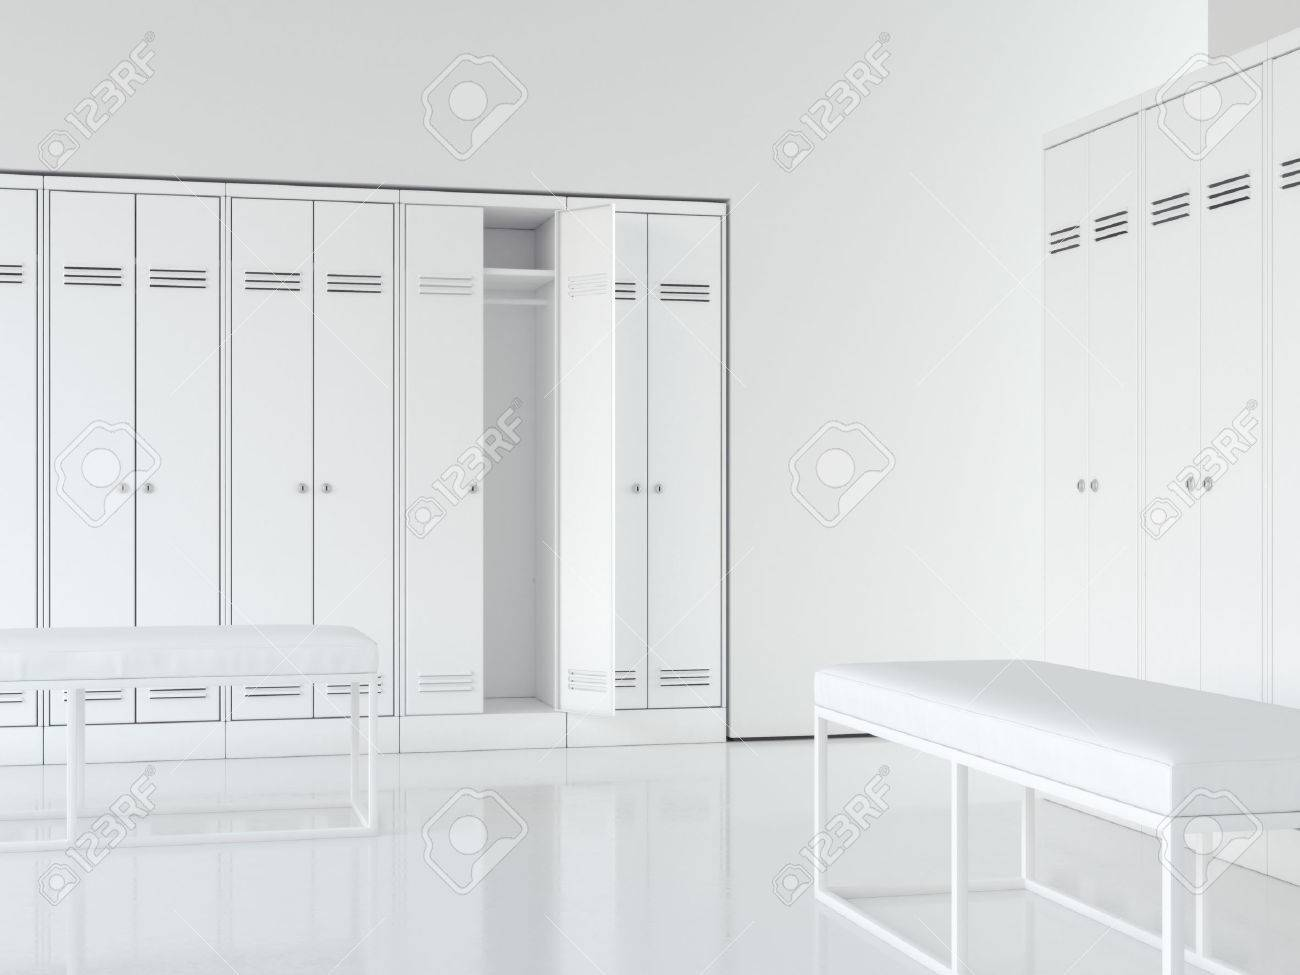 Clean bright interior of locker room with white cabinets. 3d rendering - 68193059